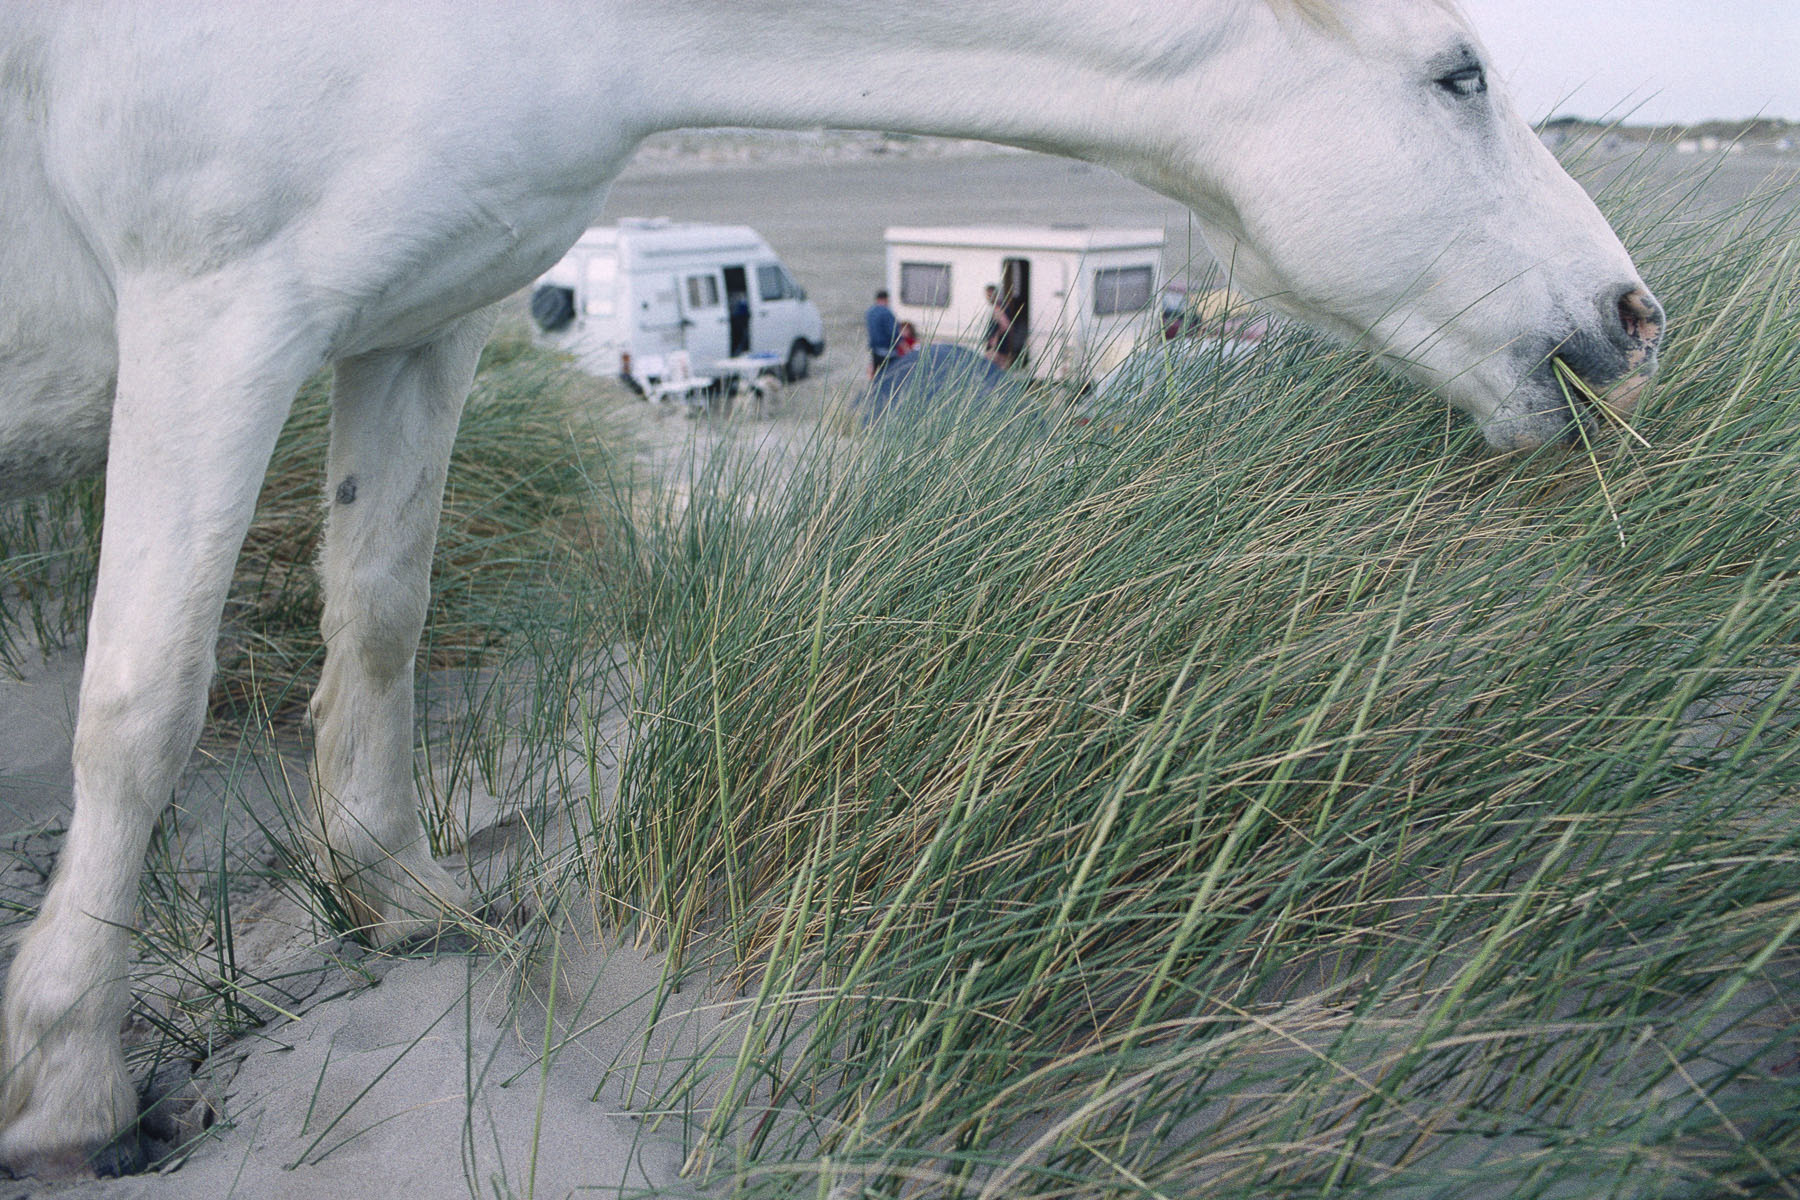 Horse roaming free on the beach. 2000